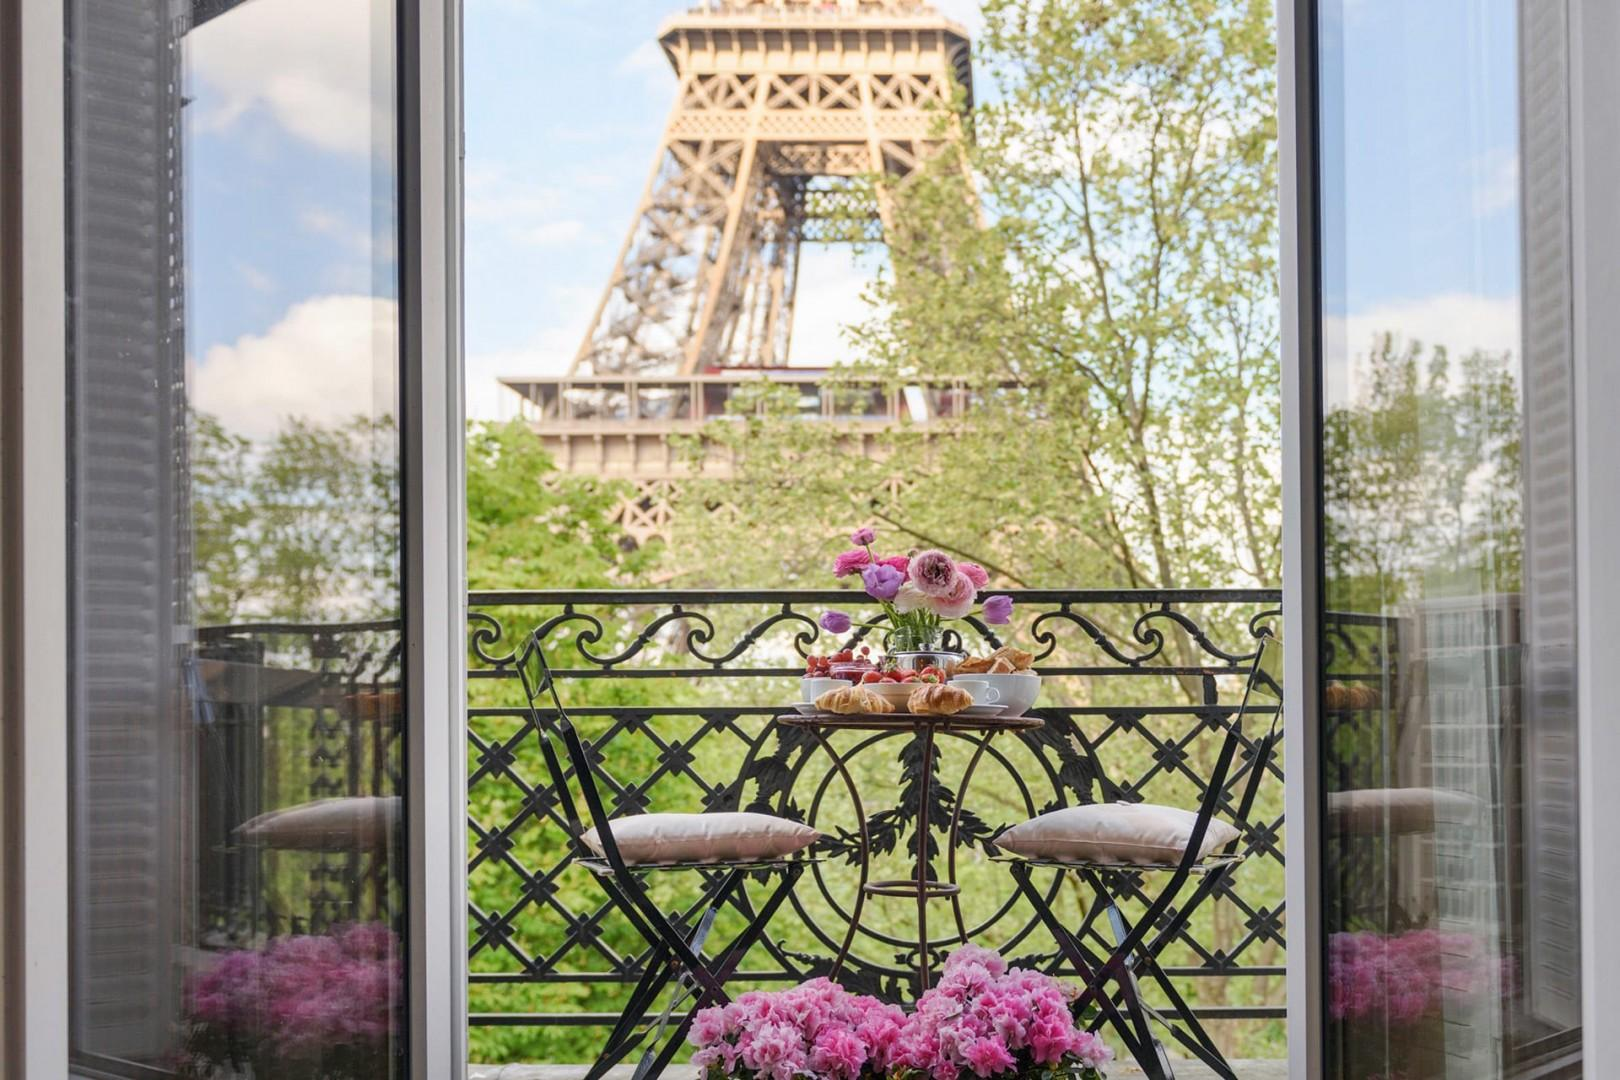 Welcome to the Viognier with Eiffel Tower view from the living room!